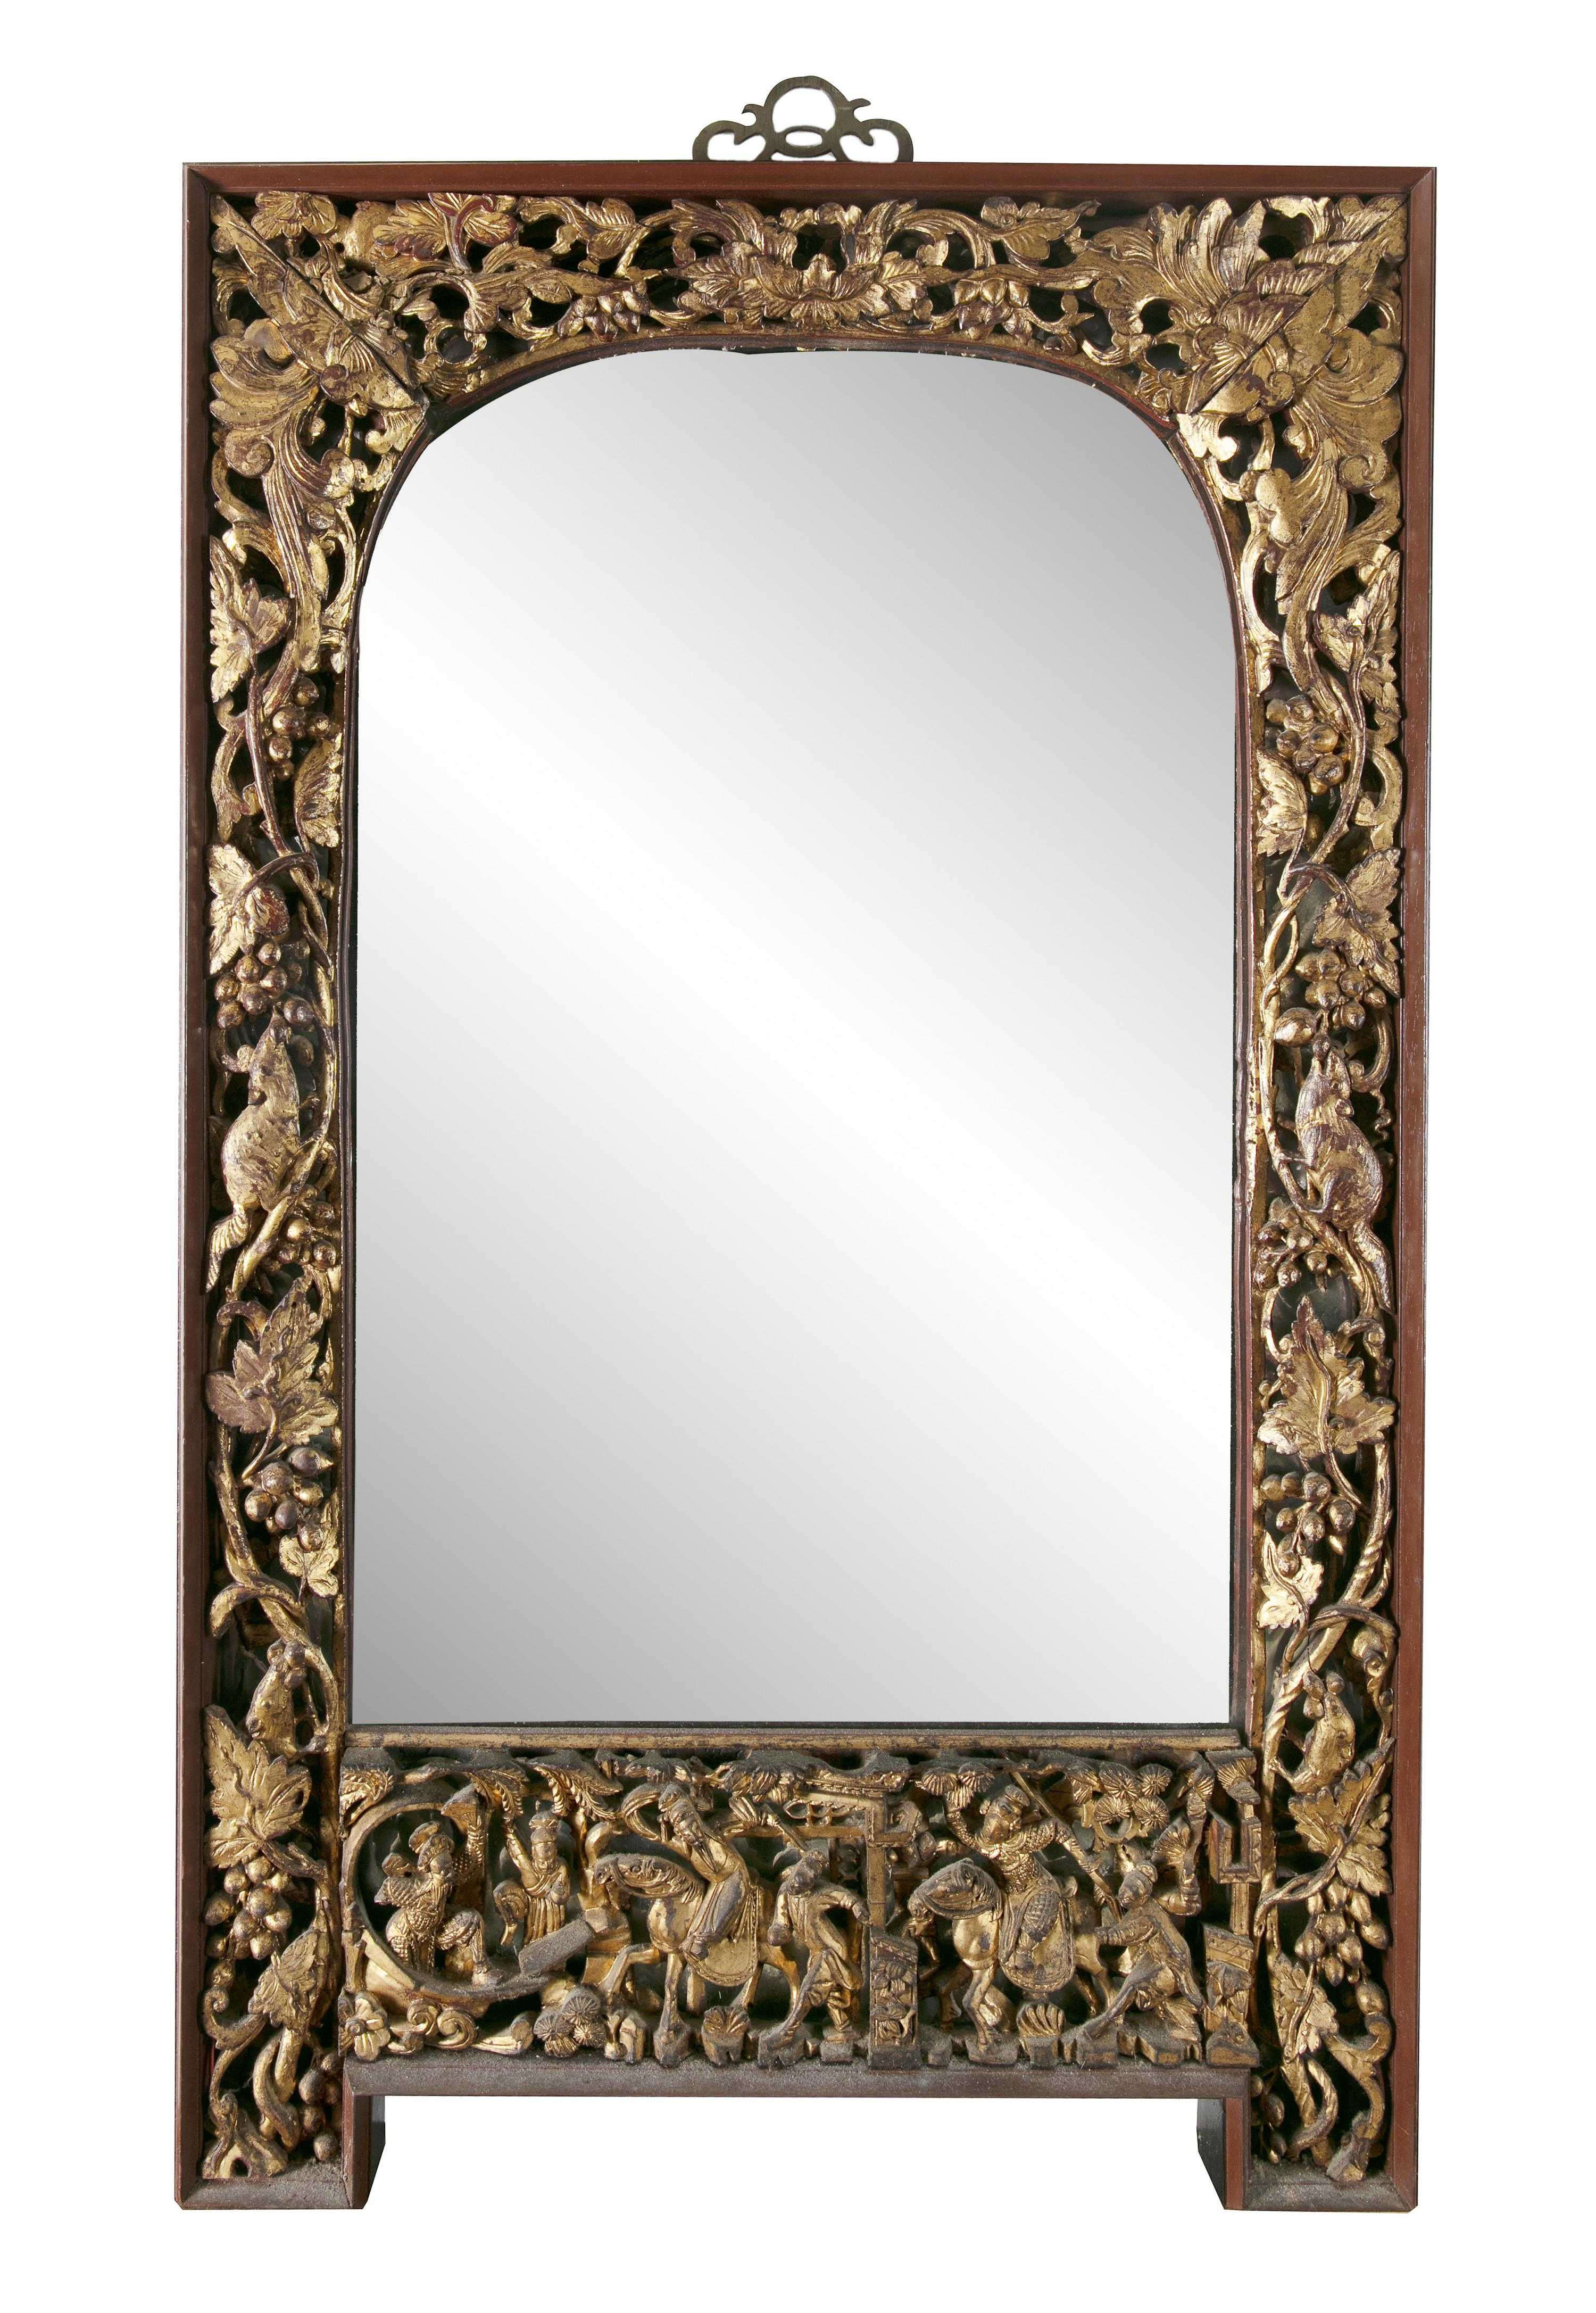 A PARCEL GILT-LACQUERED 'SQUIRRELS AND GRAPES' RETICULATED WOODEN FRAME SET WITH A MIRROR, Vietnam/ - Image 2 of 3